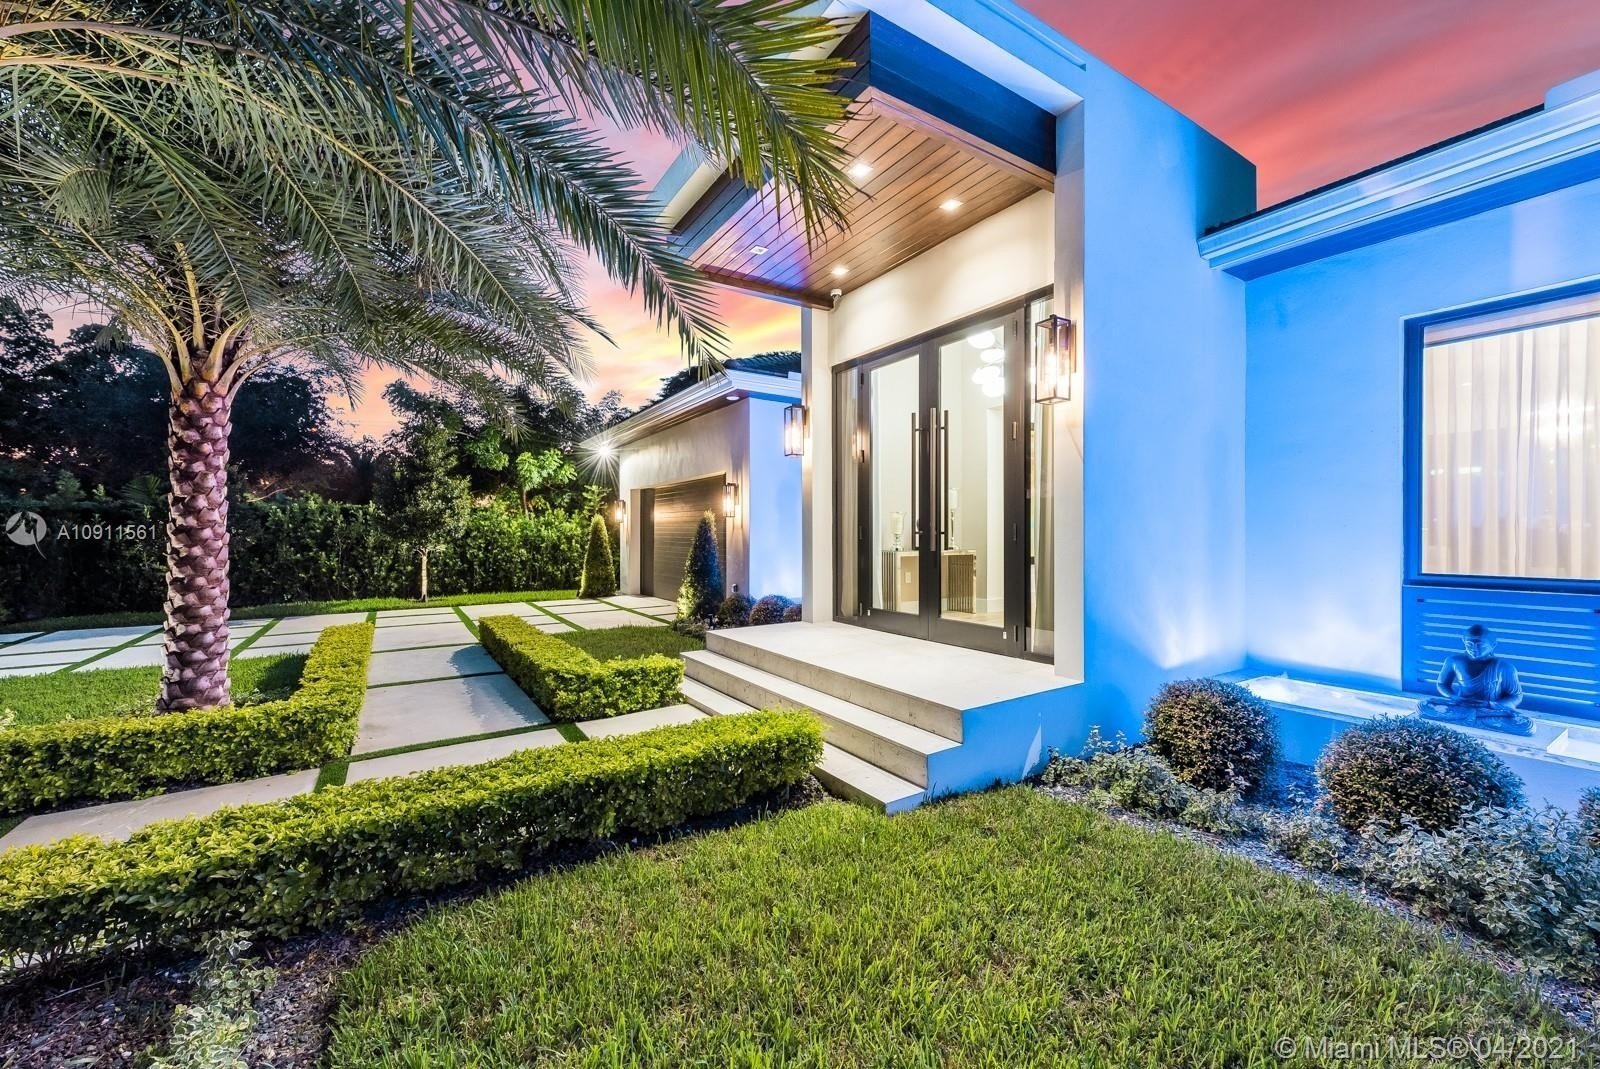 7. Single Family Homes for Sale at Riviera, Coral Gables, FL 33146